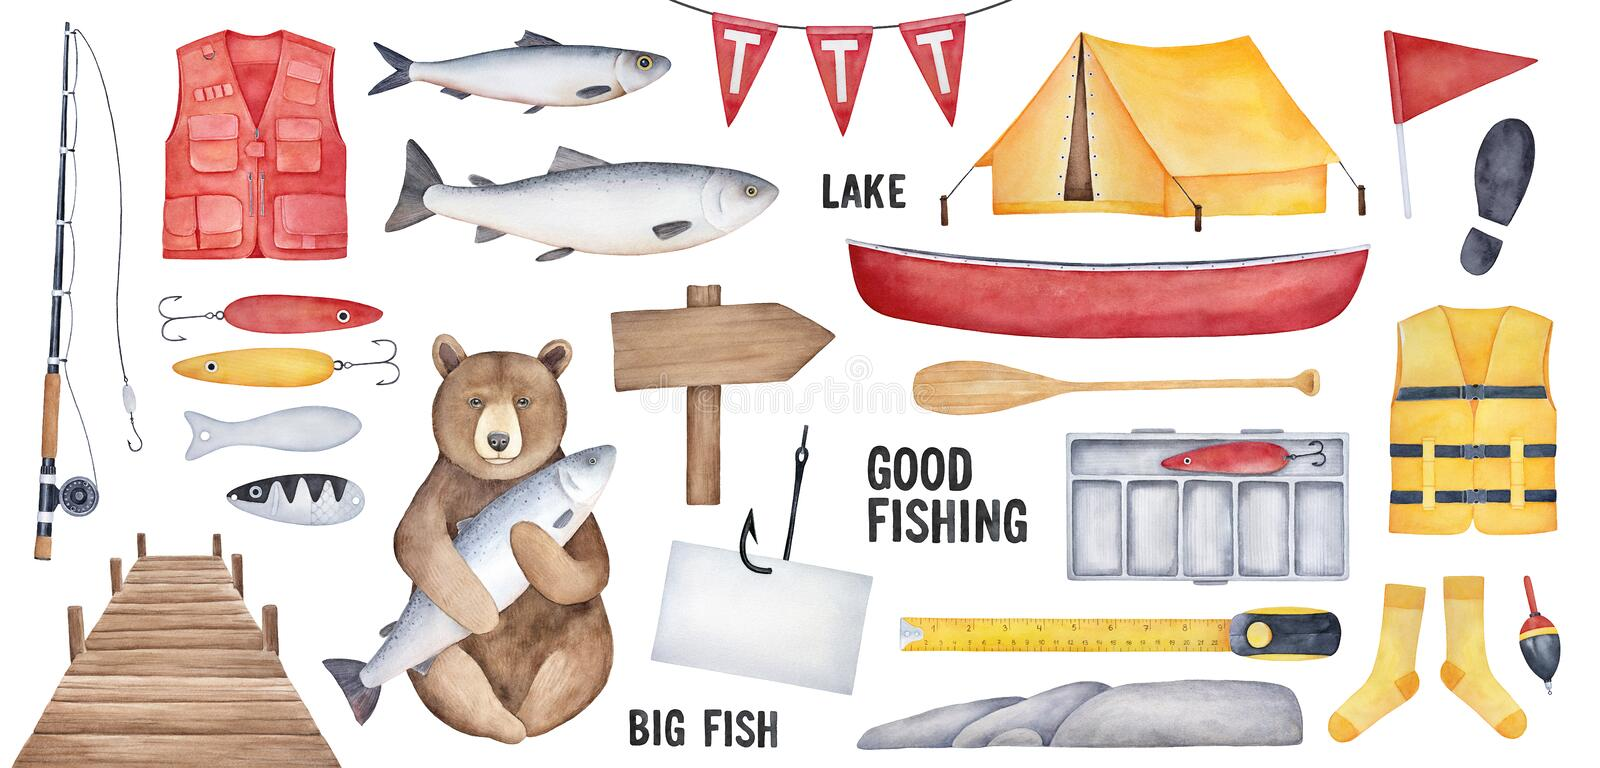 Big Fishing Collection of various fishing tools, brown bear character, yellow tent, wooden signboard, fishhook with paper note, re stock illustration